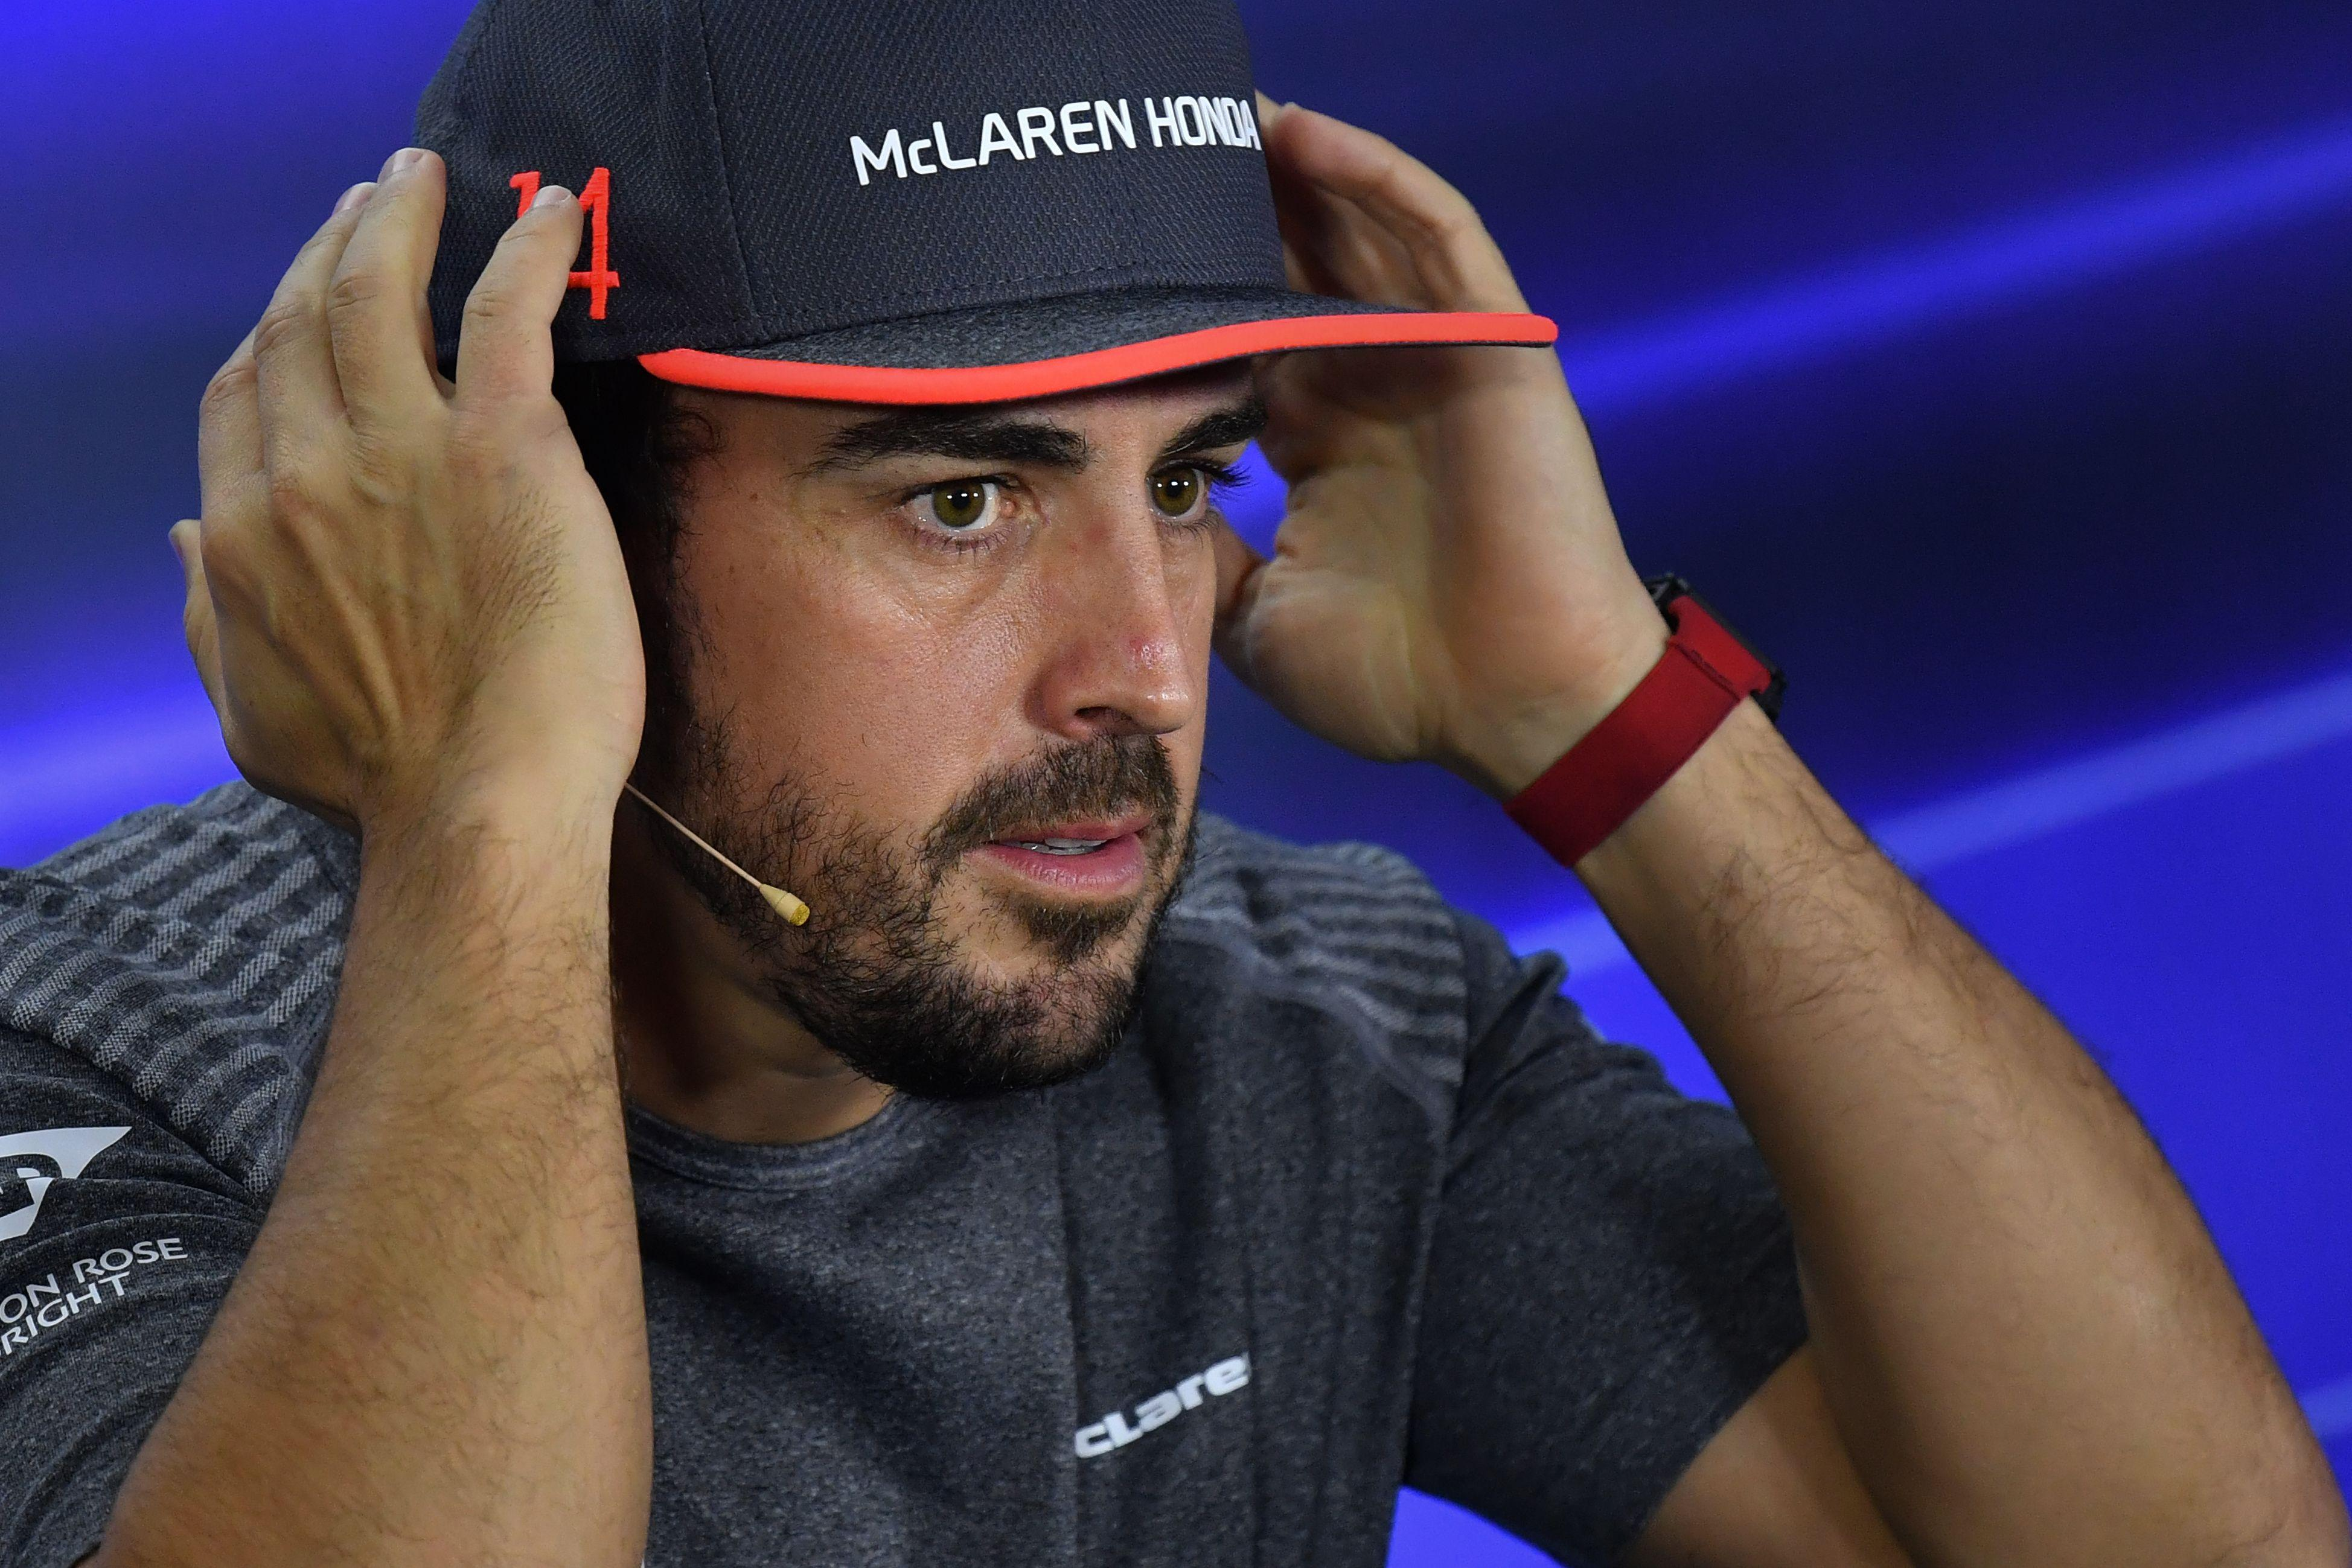 The veteran racer, 36, is set to start yet another season when testing begins in Barcelona